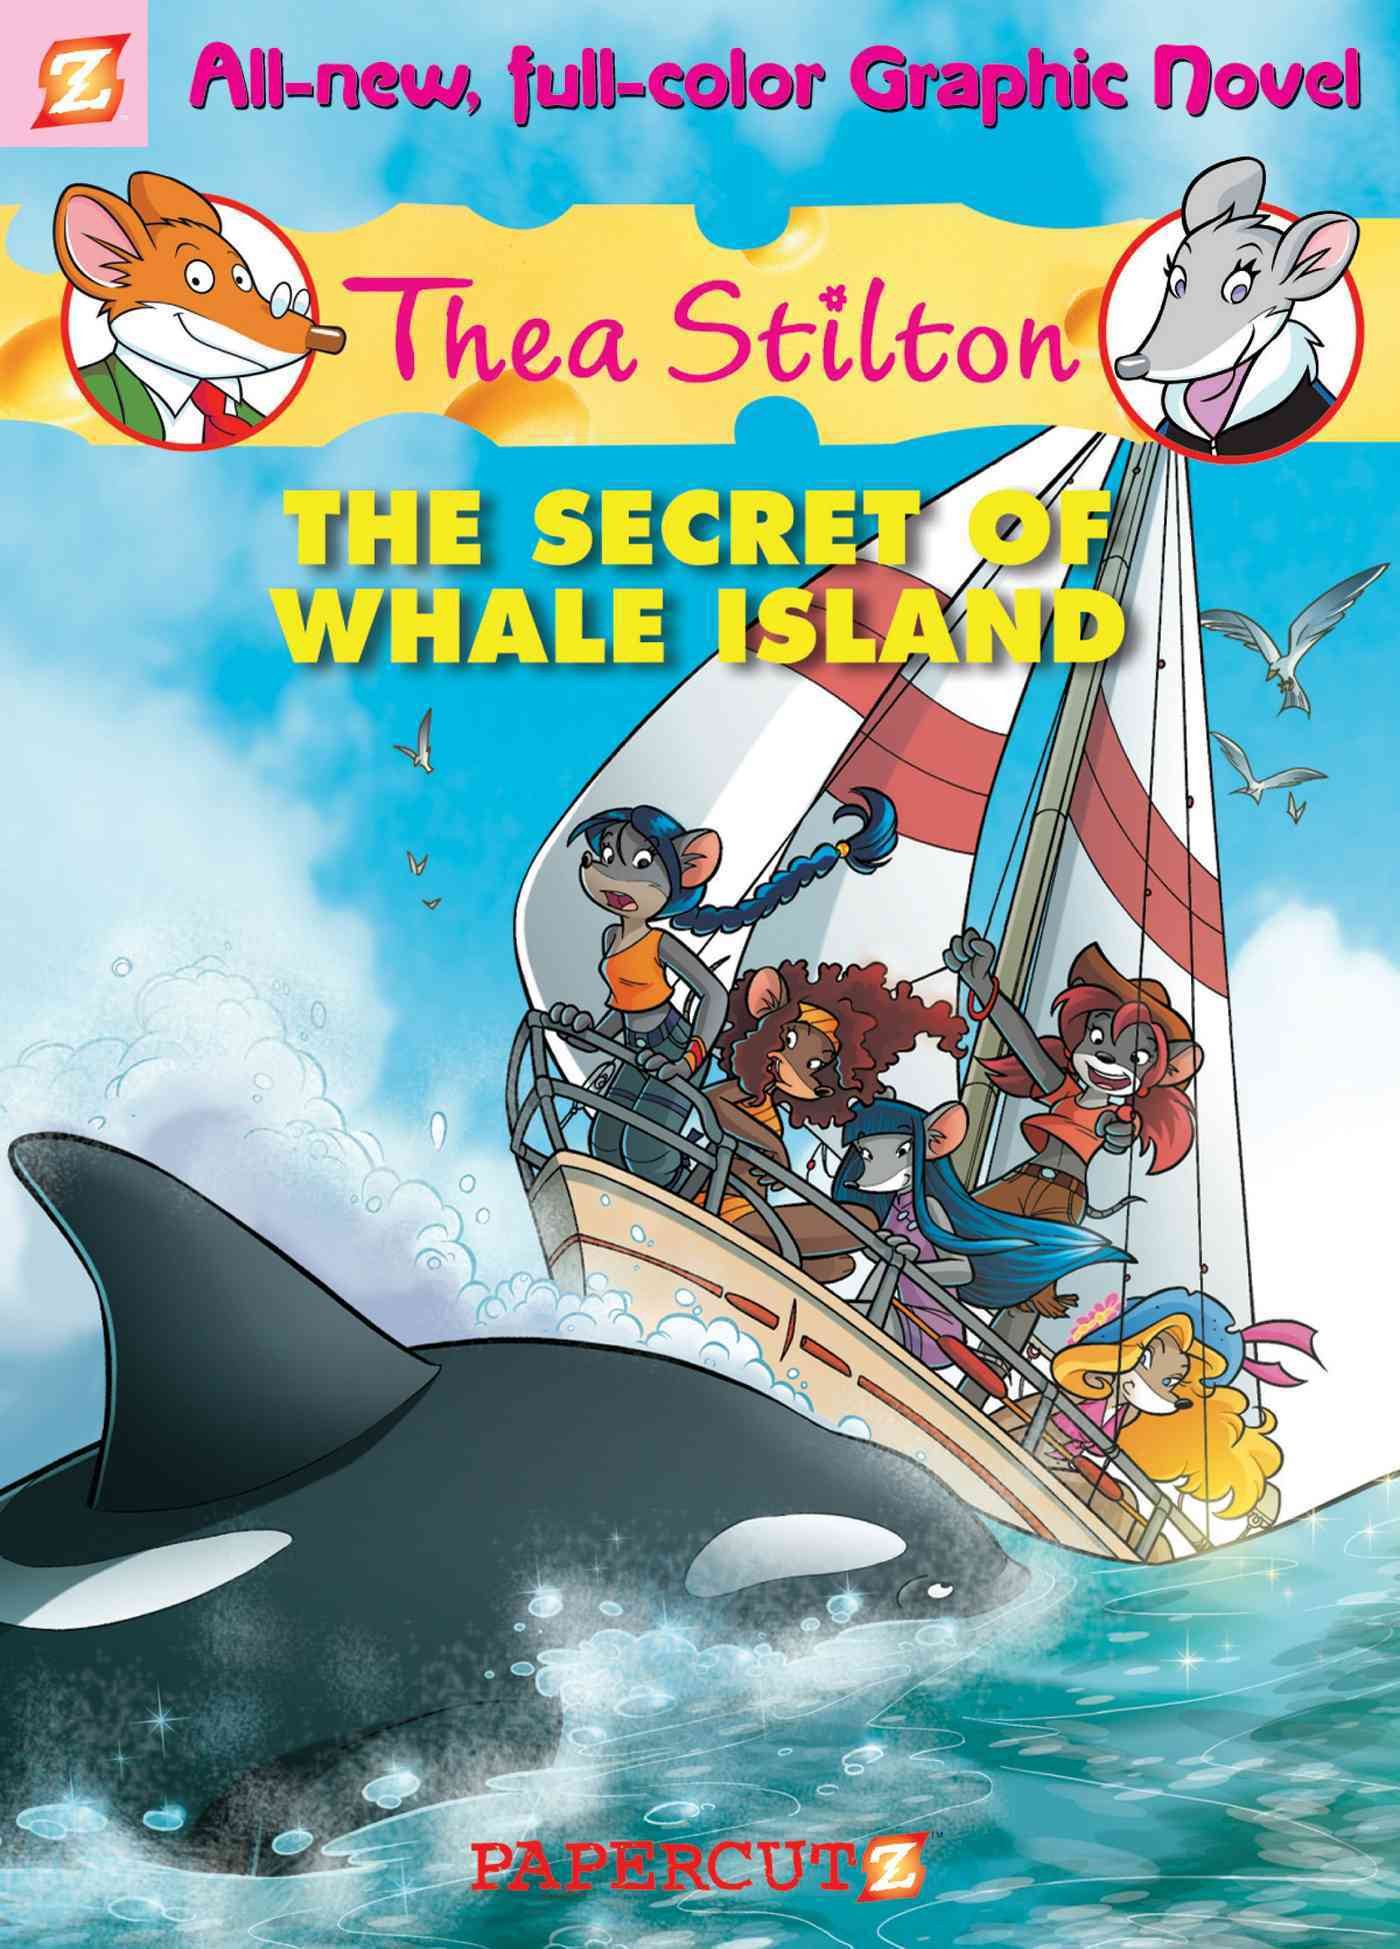 Thea Stilton 1: The Secret of Whale Island (Hardcover)